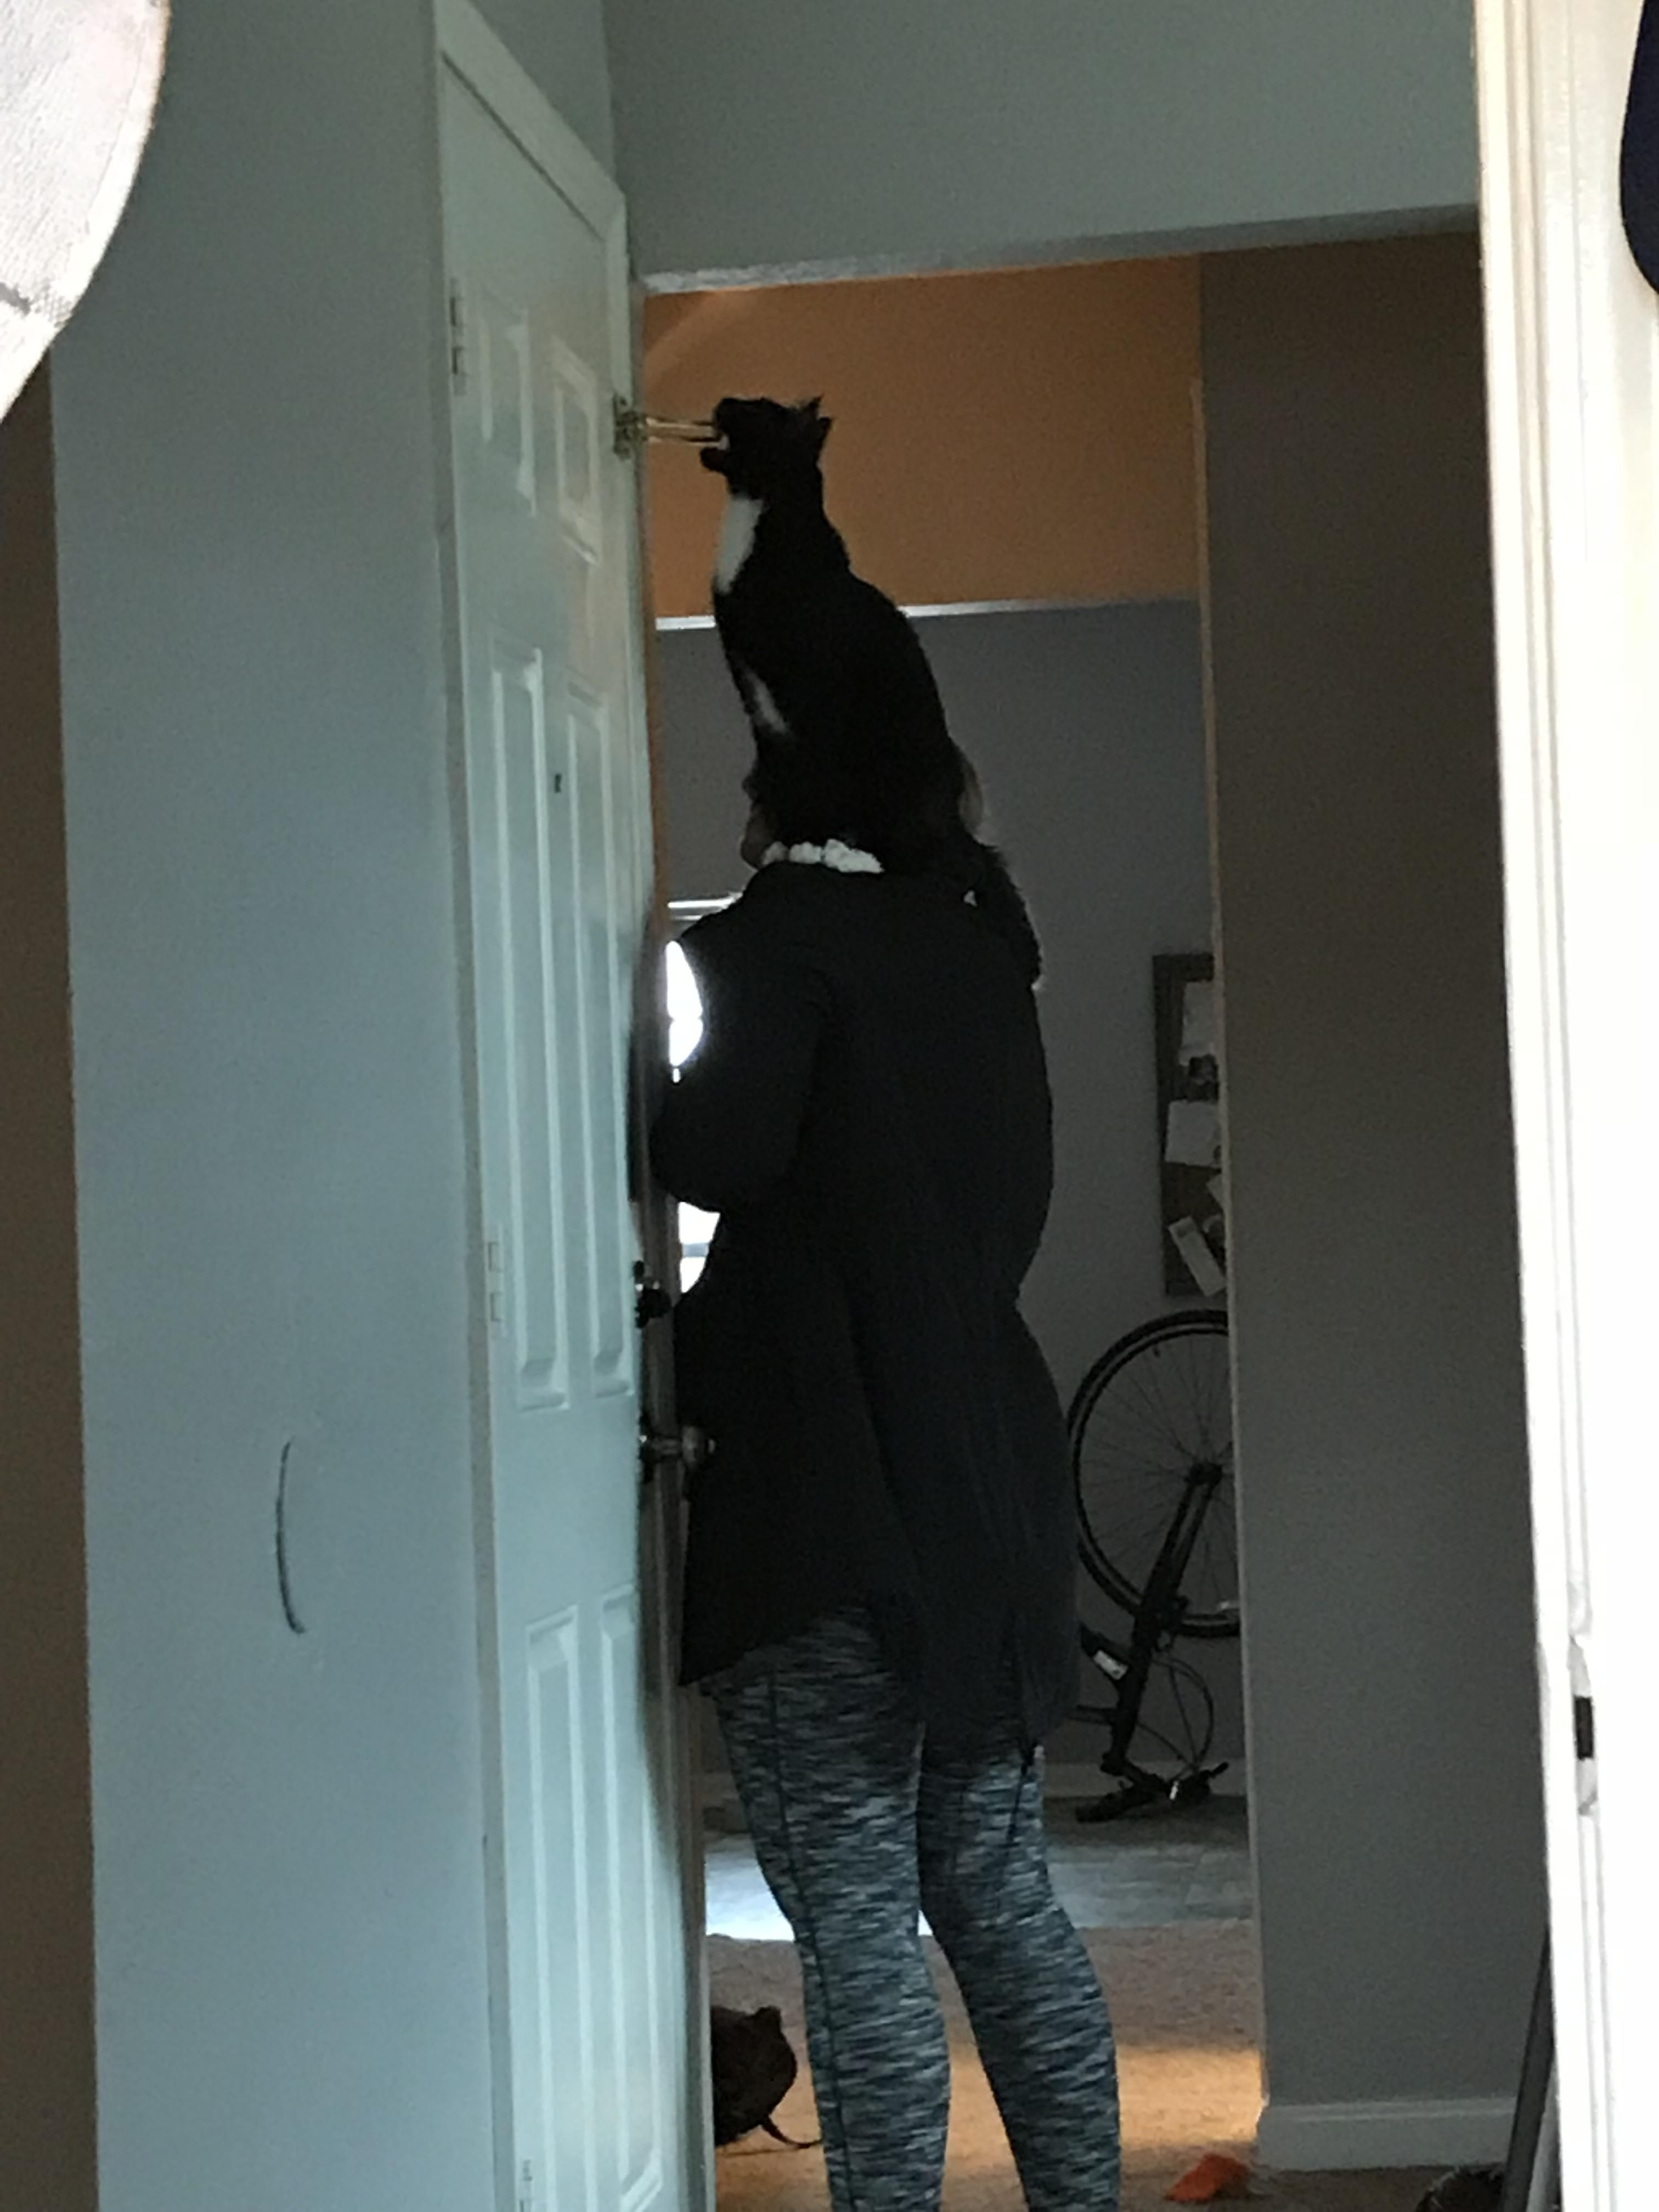 My girlfriend takes Zuko on shoulder expeditions through the house, so he can examine things in high places.